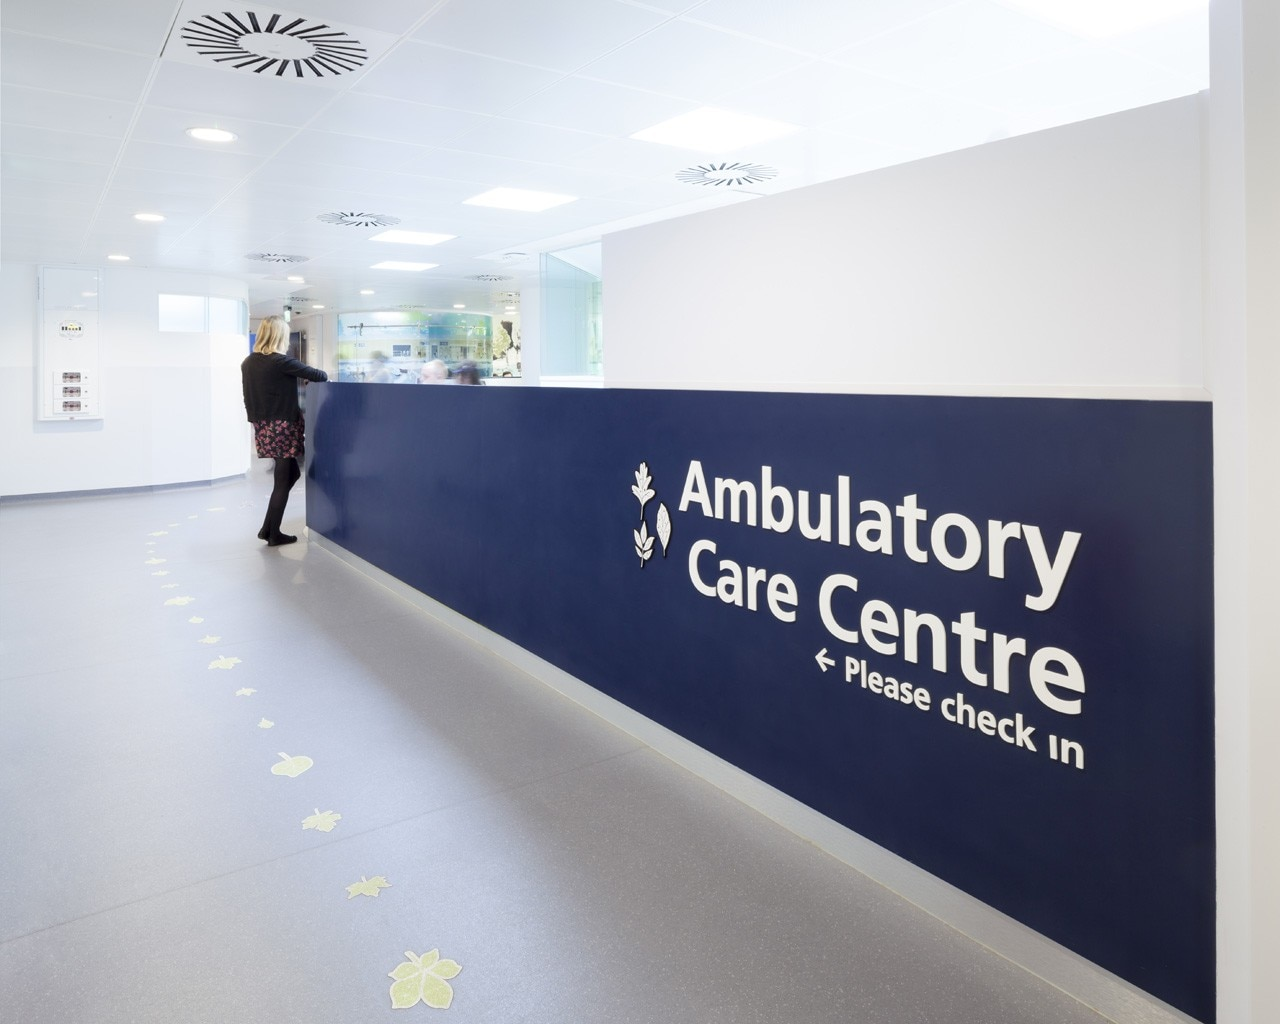 Levitt Bernstein & Studio TILT, Ambulatory Care Centre at the Whittington Hospital